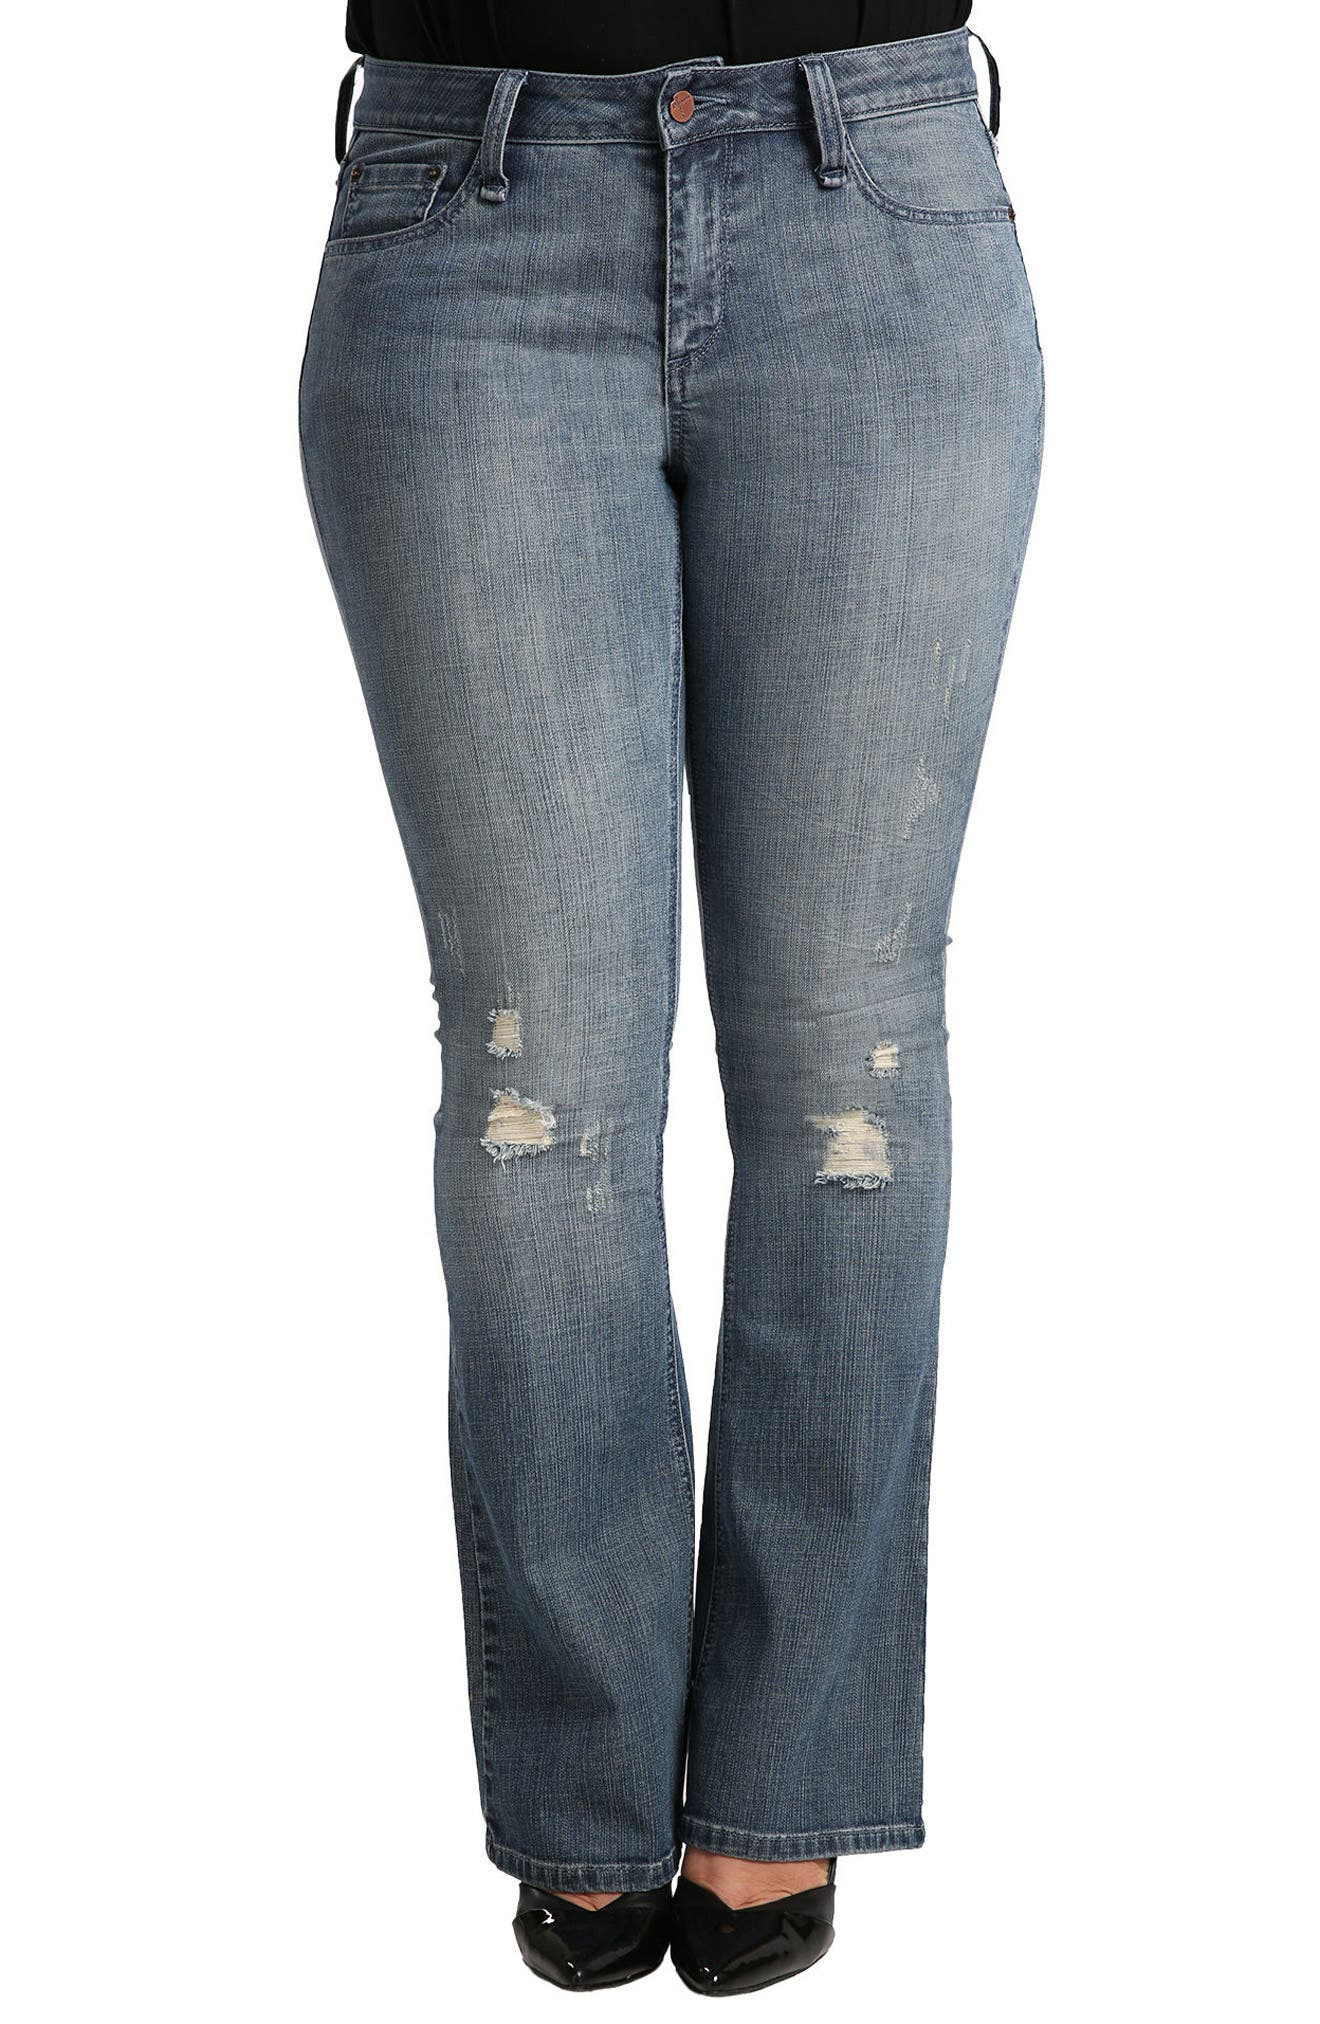 Plus Women's Standards & Practices Clarice Uptown Mid Rise Bootcut Jeans